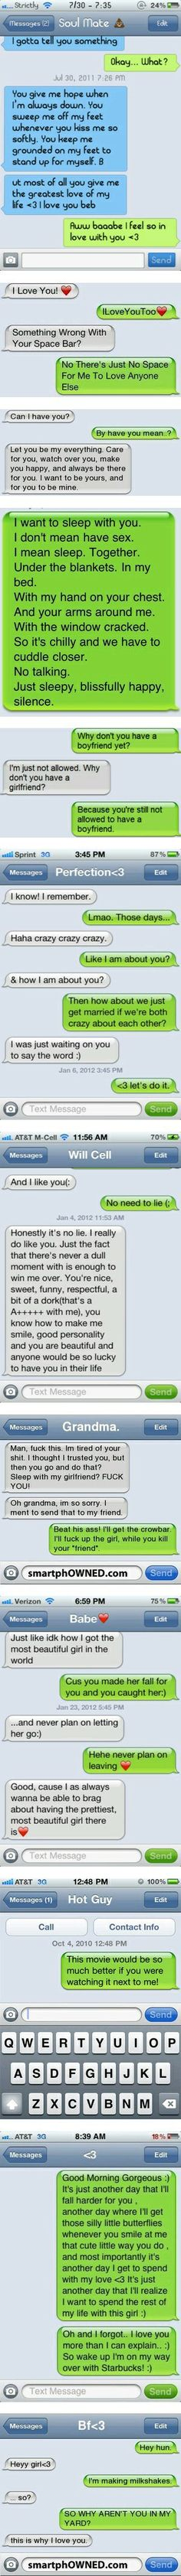 New funny couple texts awesome ideas Funny Texts To Send, Funny Texts Crush, Crush Texts, Funny Relationship, Cute Relationships, Cute Quotes, Funny Quotes, Funny Humor, Mom Humor